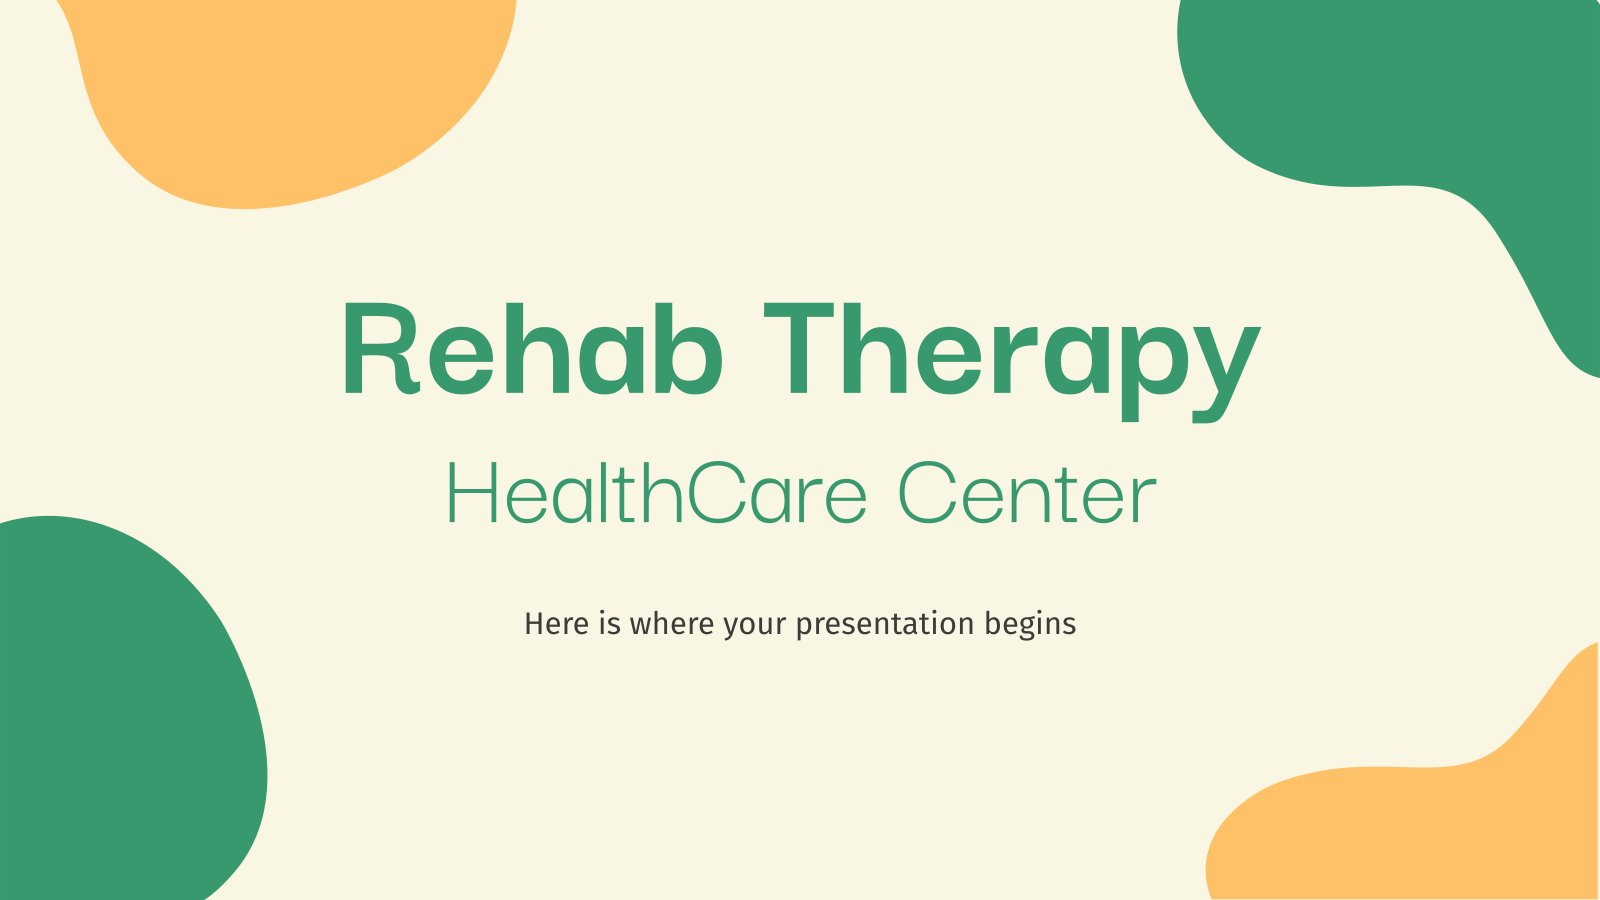 Rehab Therapy HealthCare Center presentation template